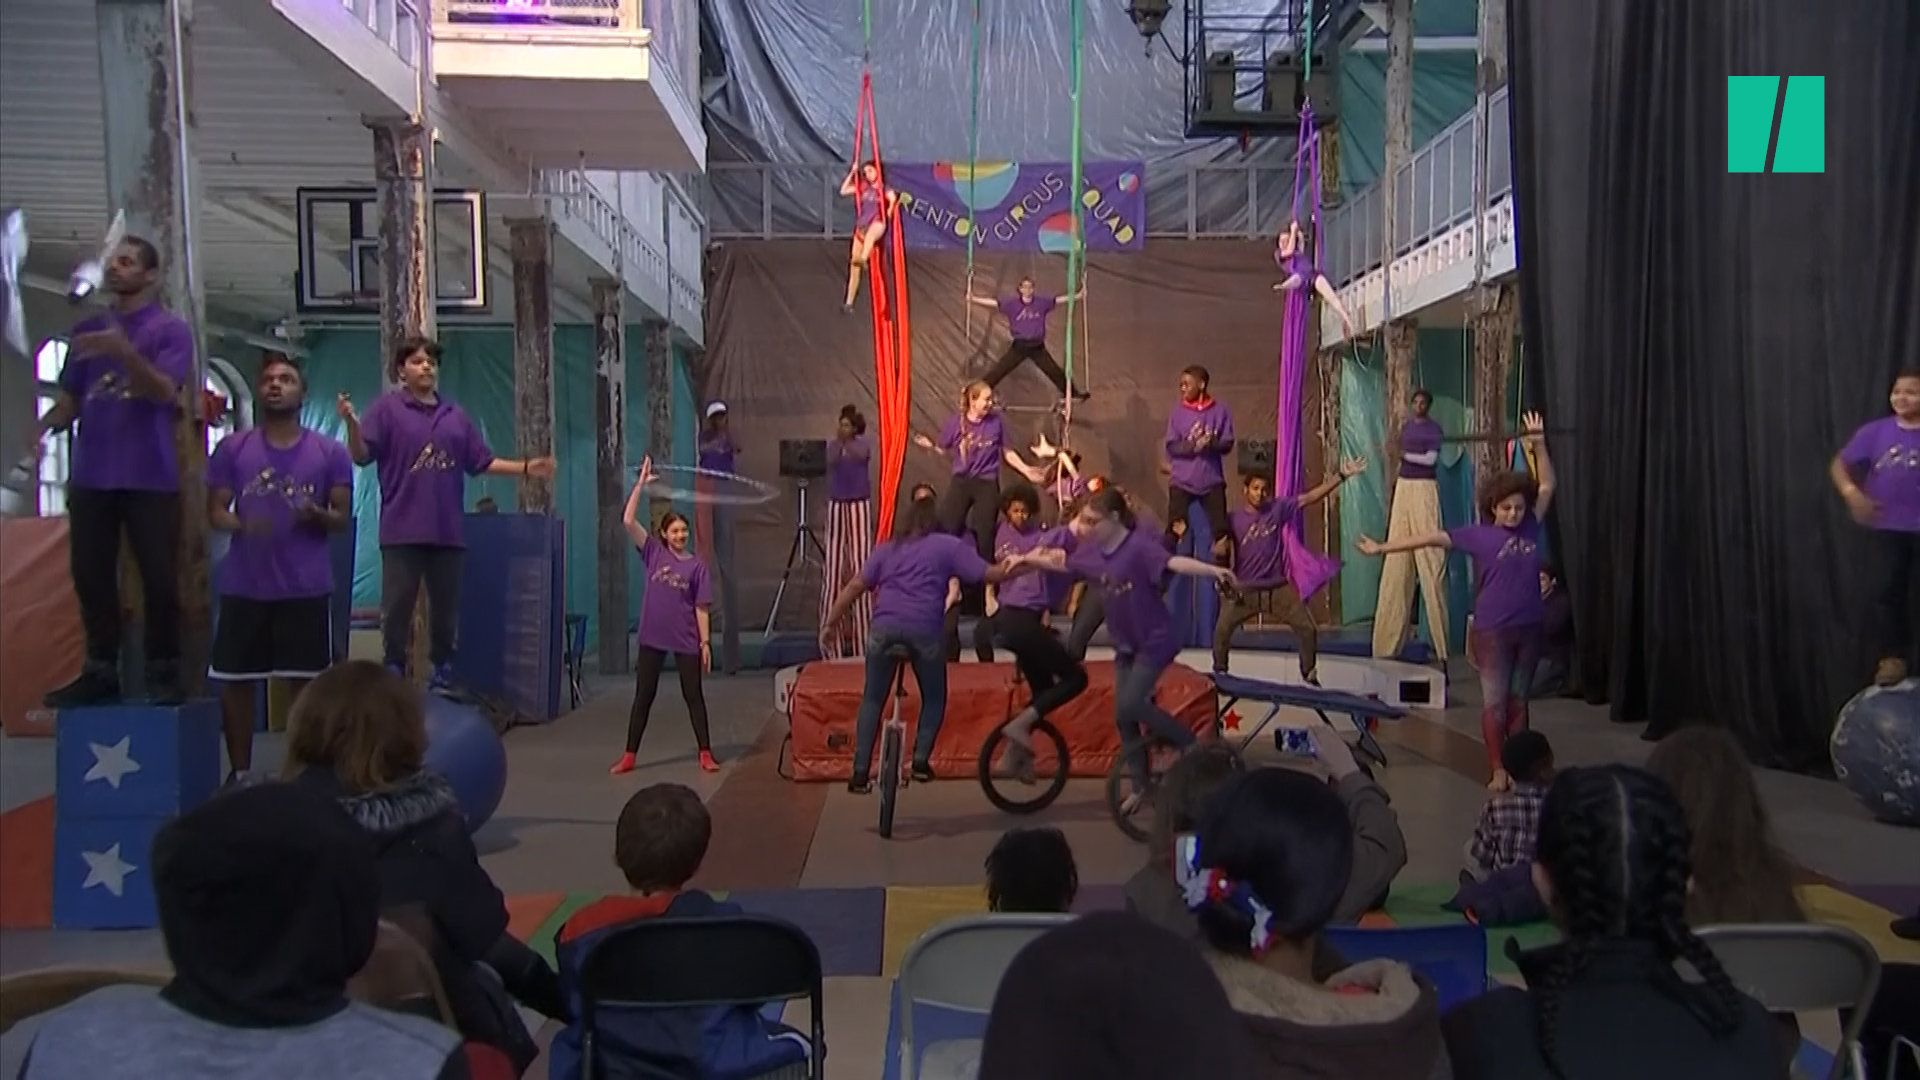 A youth circus program in Trenton New Jersey is bringing kids together from all walks of life and helping empower them